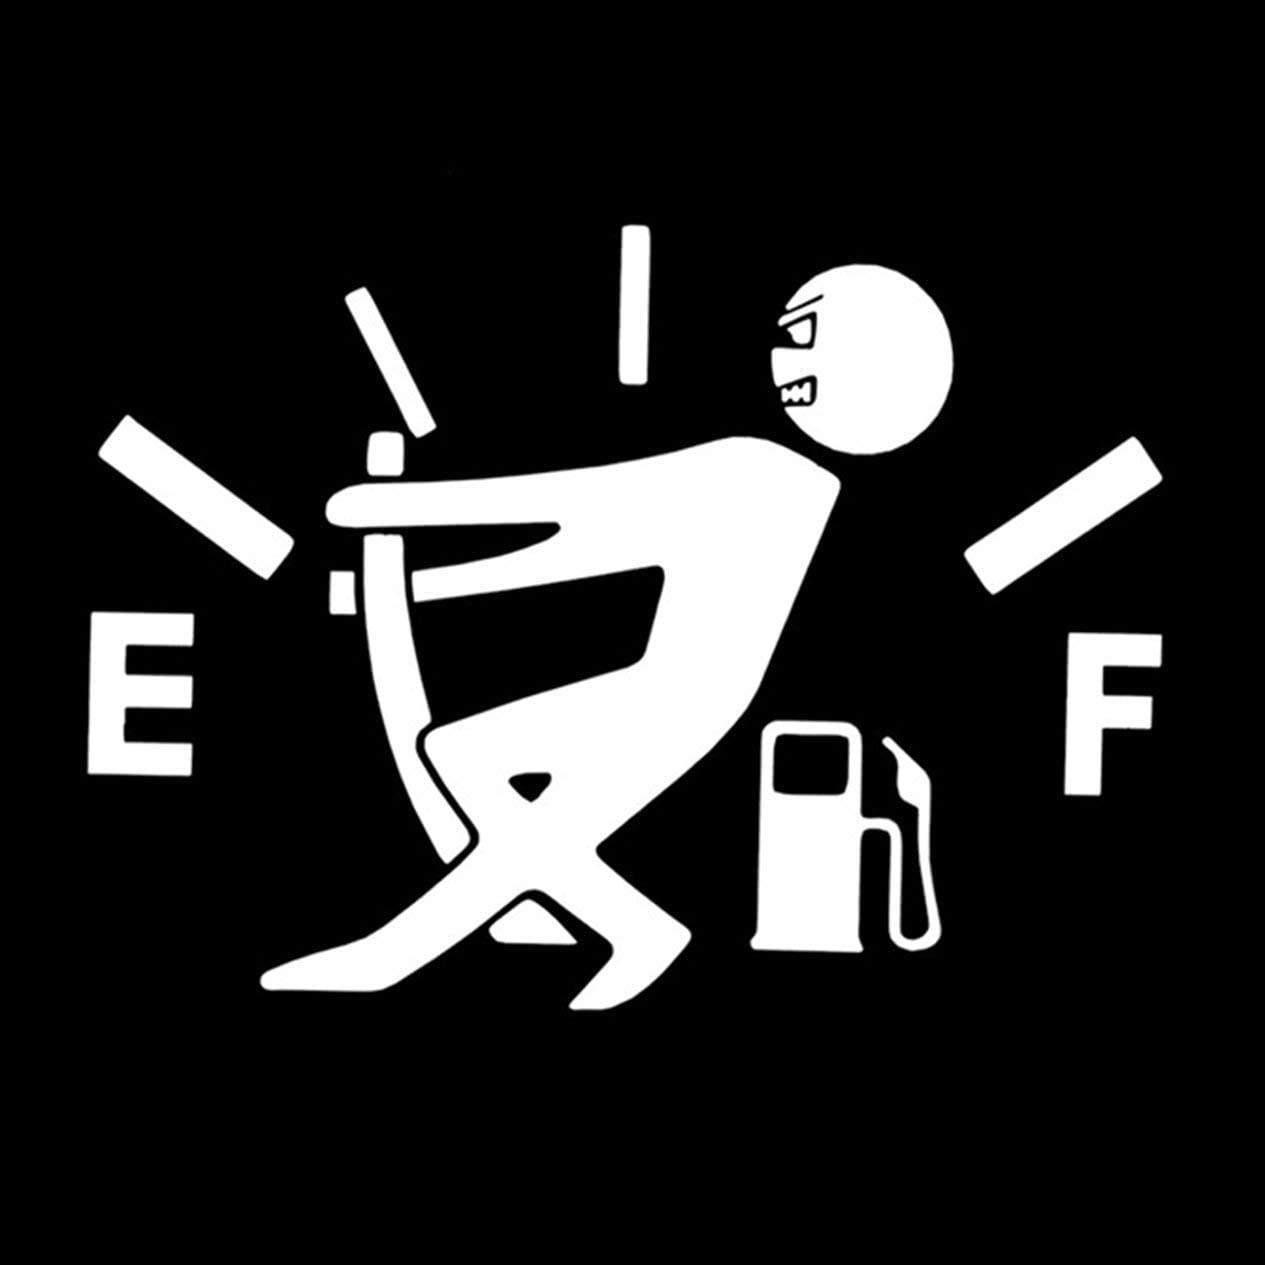 Funny Car Stickers High Gas Consumption Decal Fuel Gage Empty Stickers Car Stickers Car Styling Accessories-White